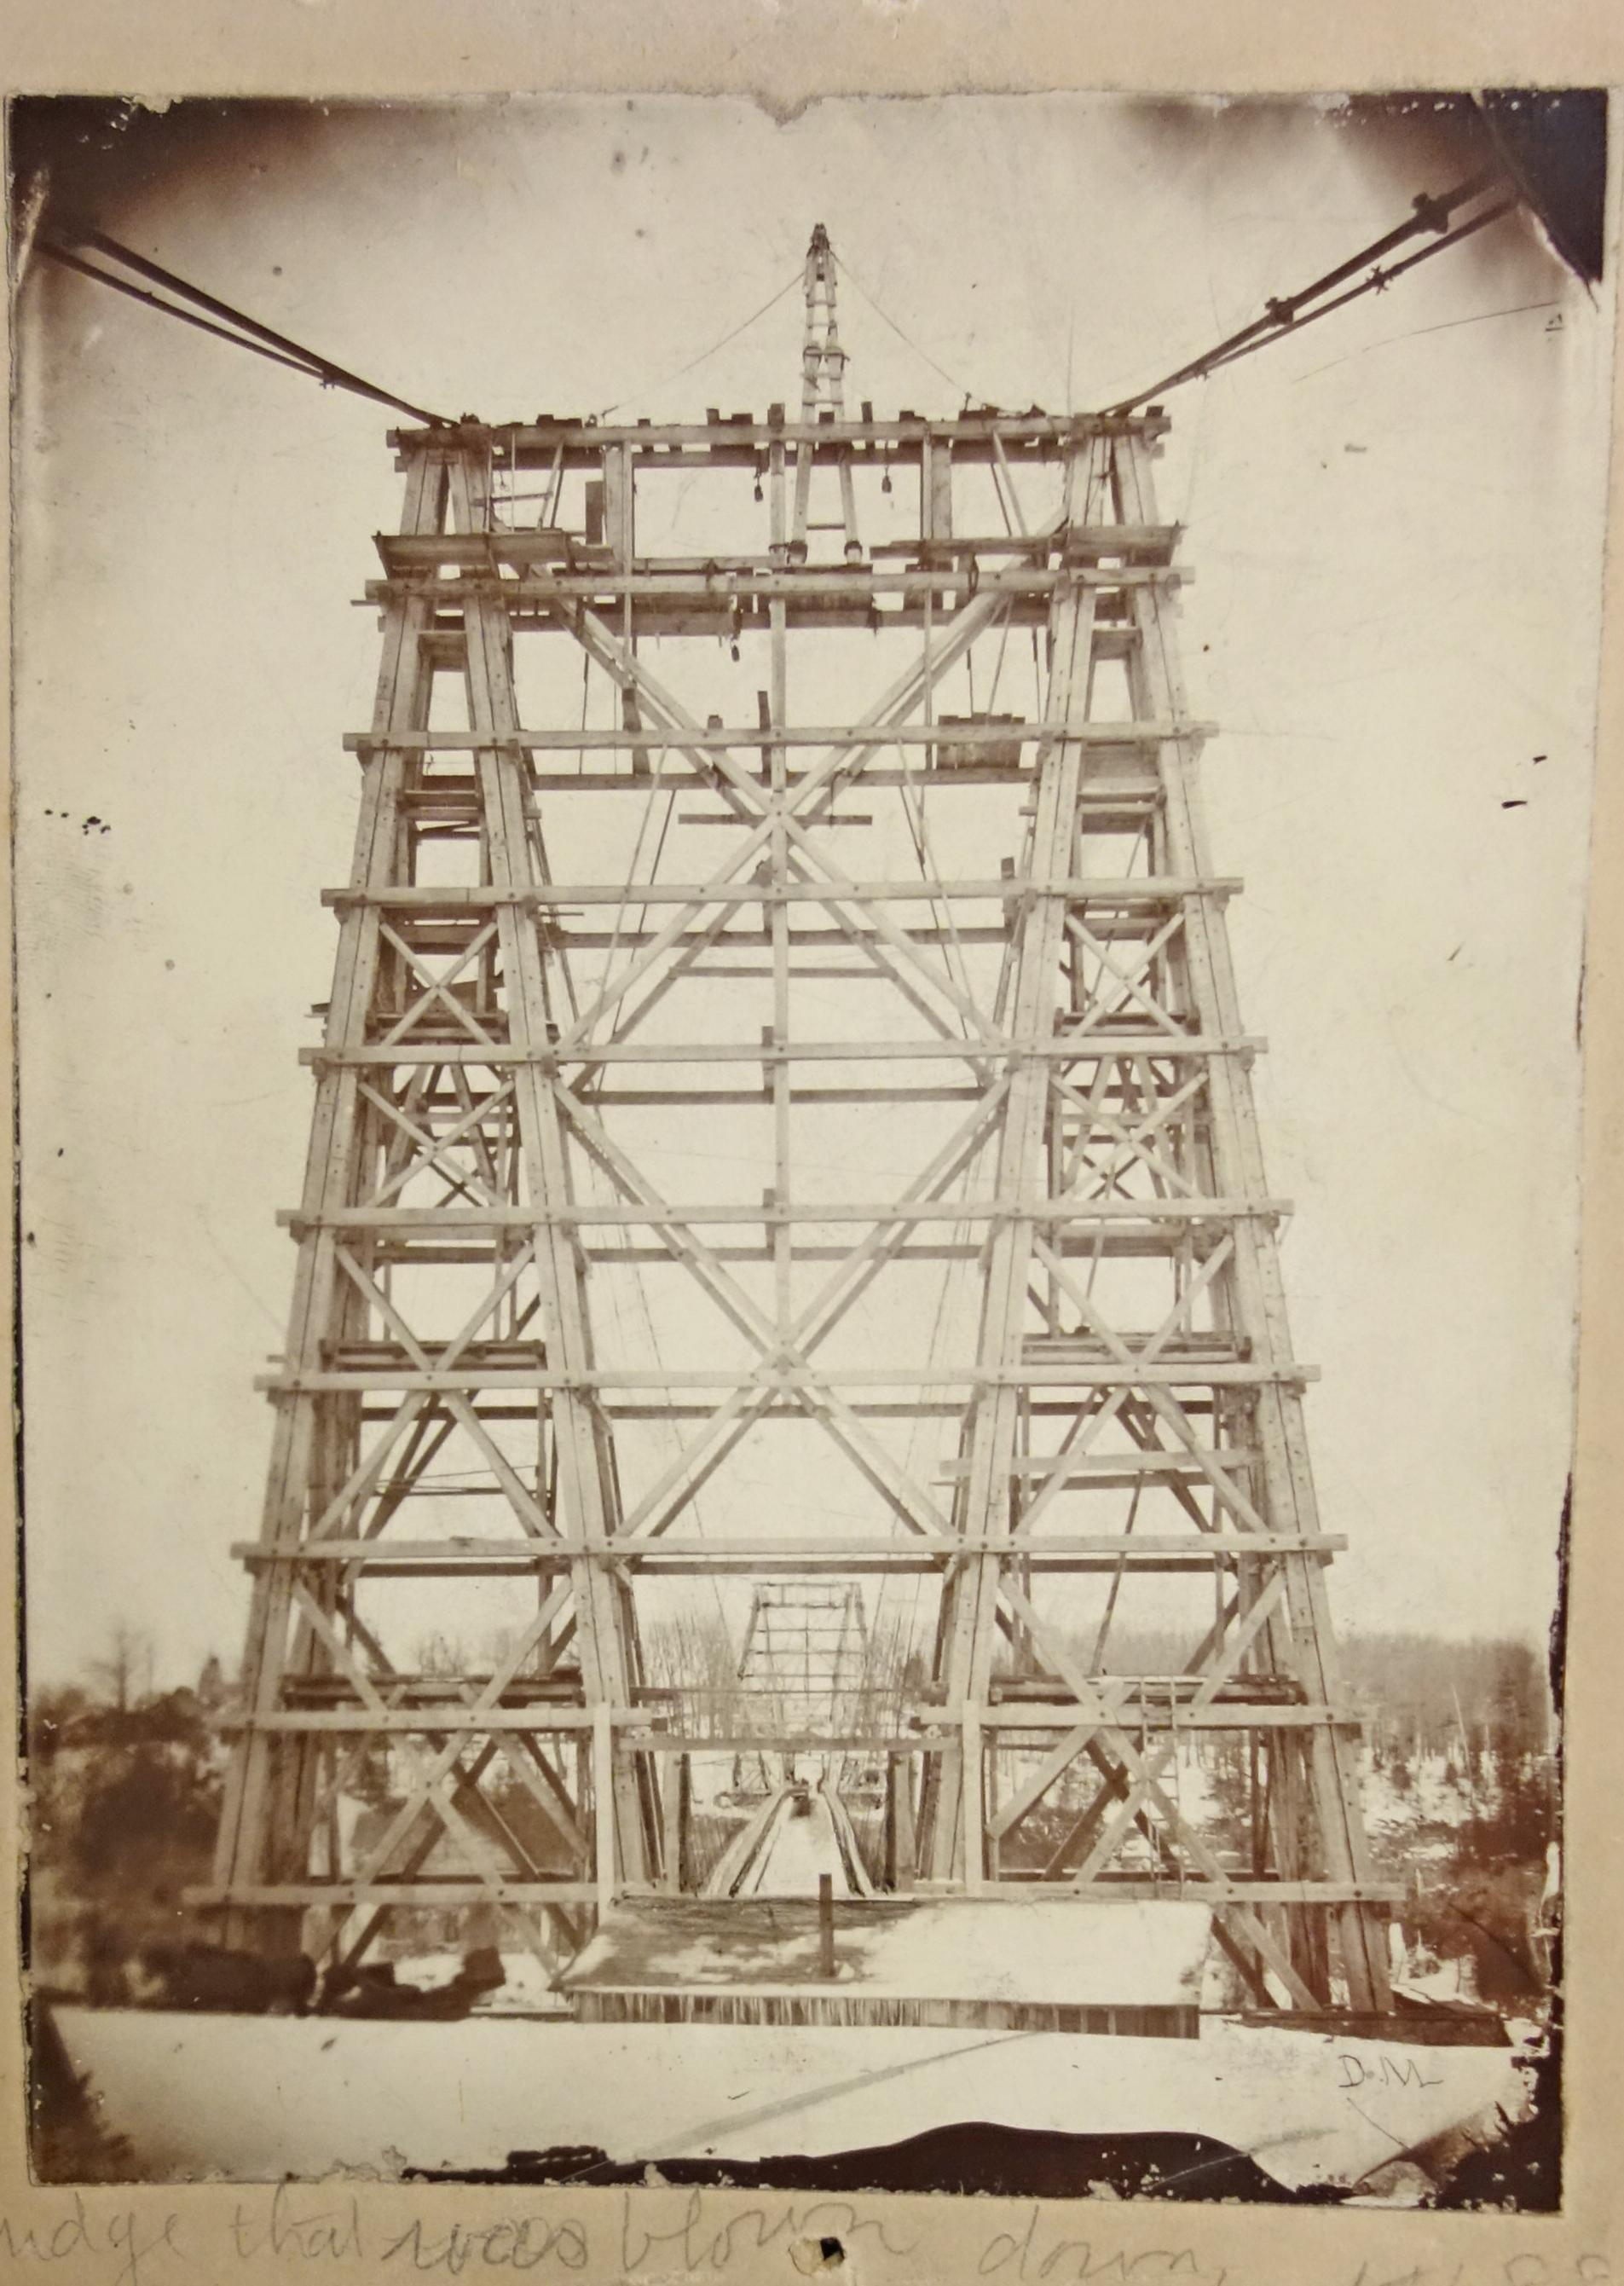 Photograph of the First Falls View Suspension Bridge, camera is pointed the length of the bridge along the deck. Imposing wooden, trestle structure of the pylons take up most of the image; the other pylon stands at the other end of the bridge. There is a building in the fore-ground infront of the bridge. Large cables hold the pylons of the bridge down which are in anchor points behind the photographer. Underneath the photograph is written